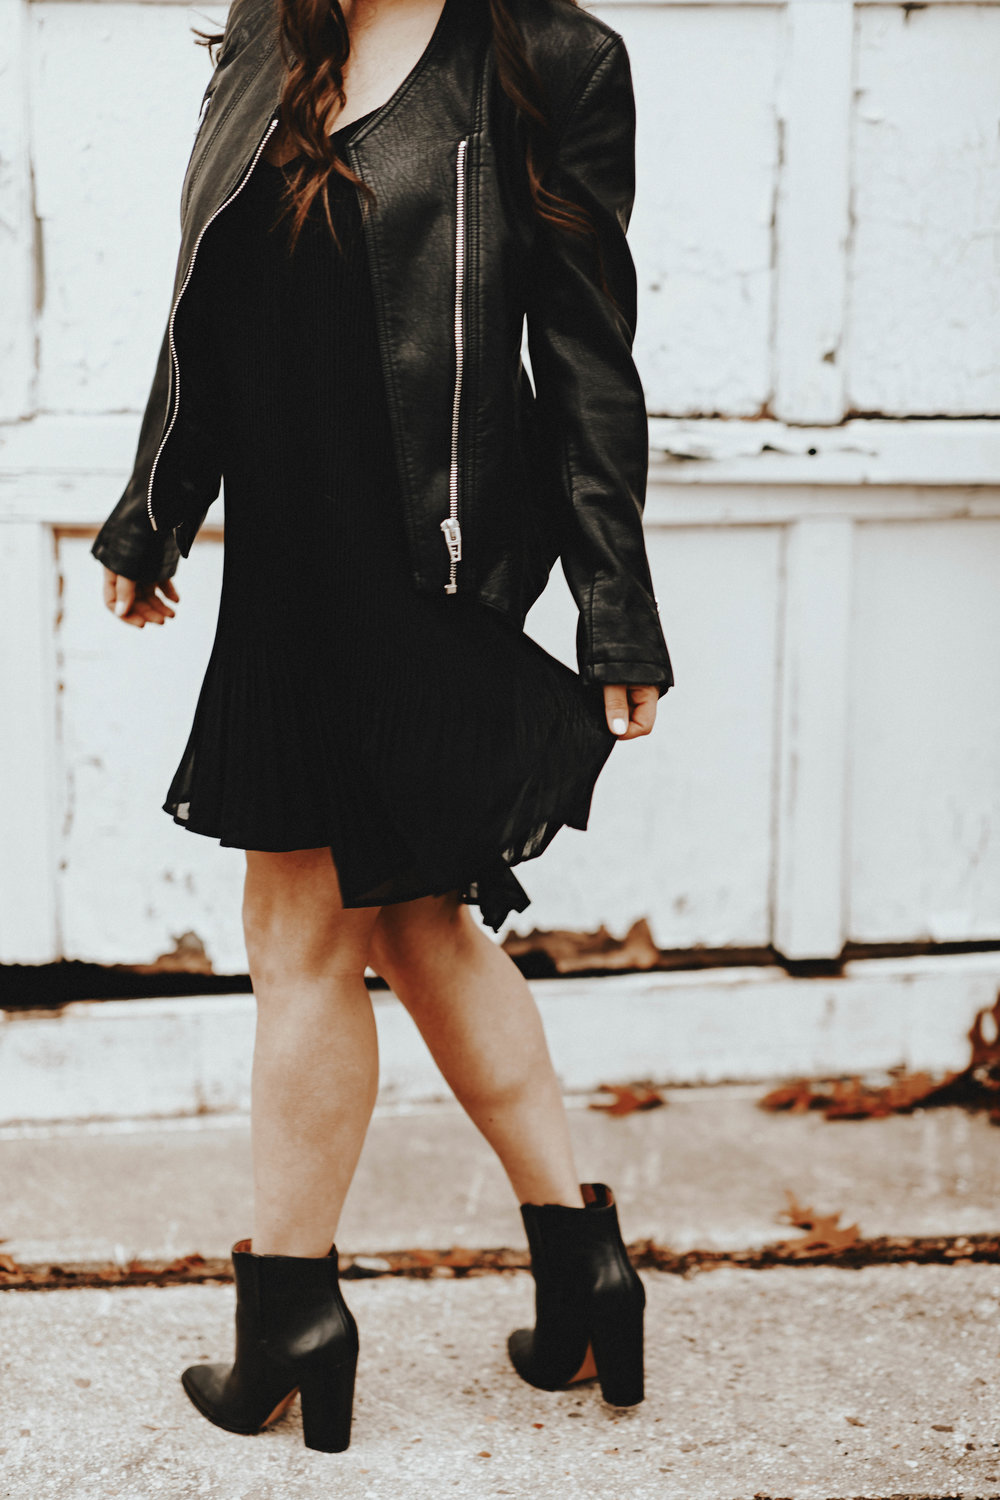 The Perfect LBD for the Holidays | Pine Barren Beauty | little black dress, holiday dress, holiday outfit idea, holiday outfit inspiration, gentle fawn little black dress